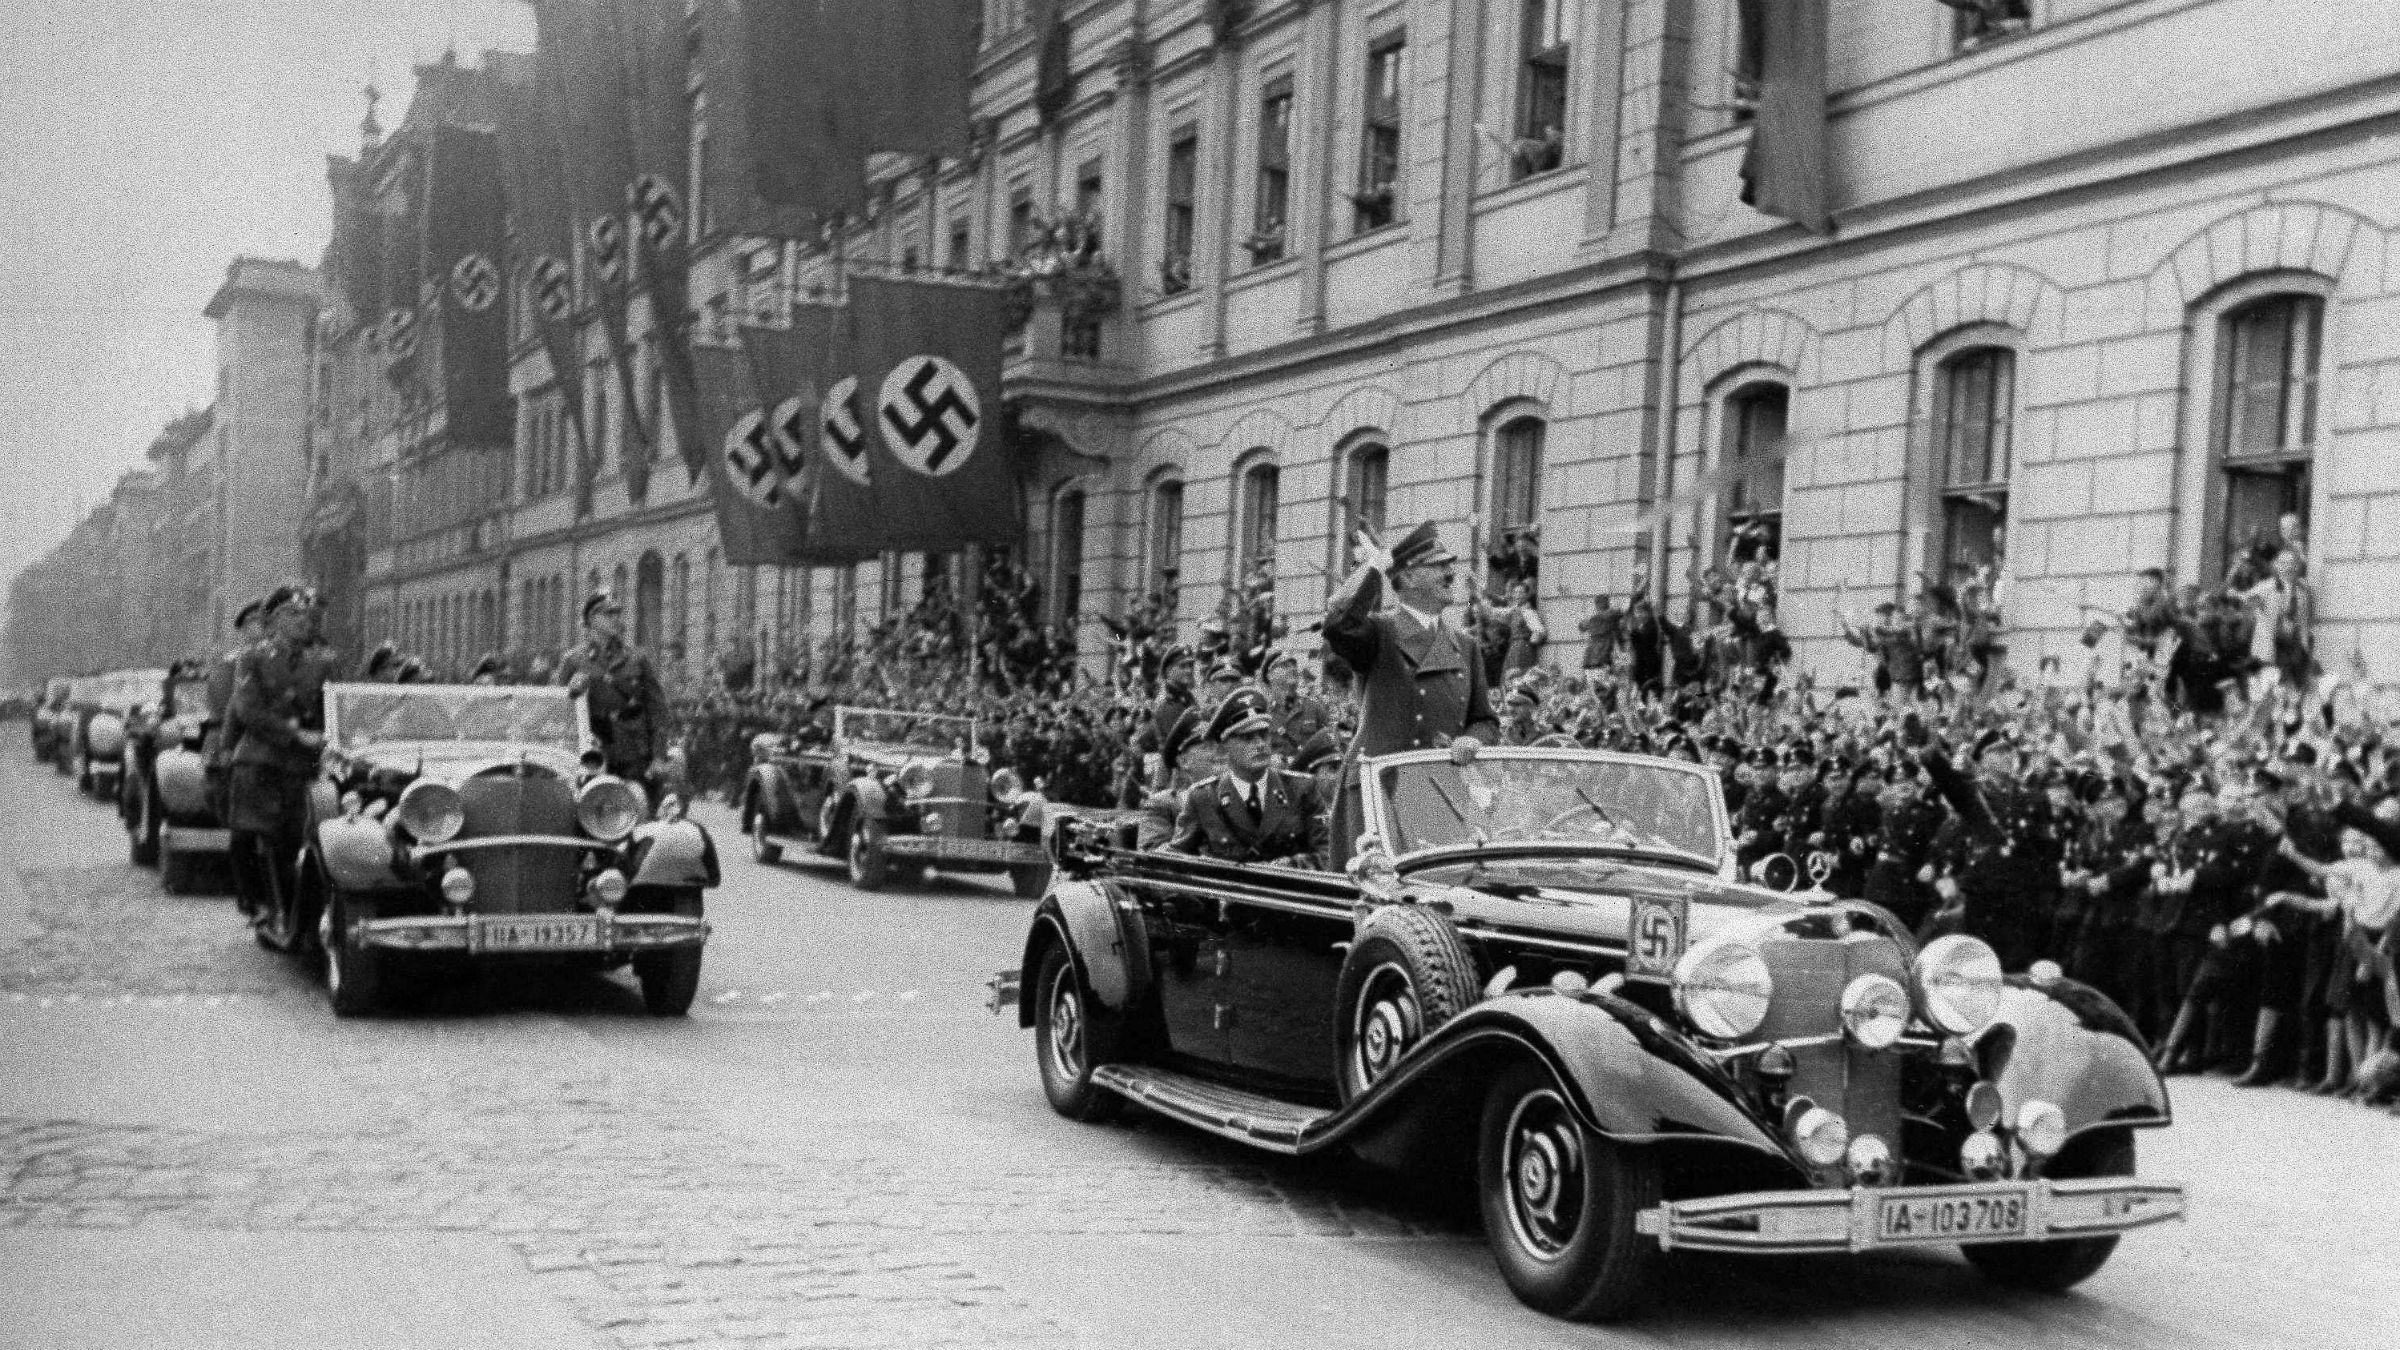 Nazi parade scene with Hitler in a car